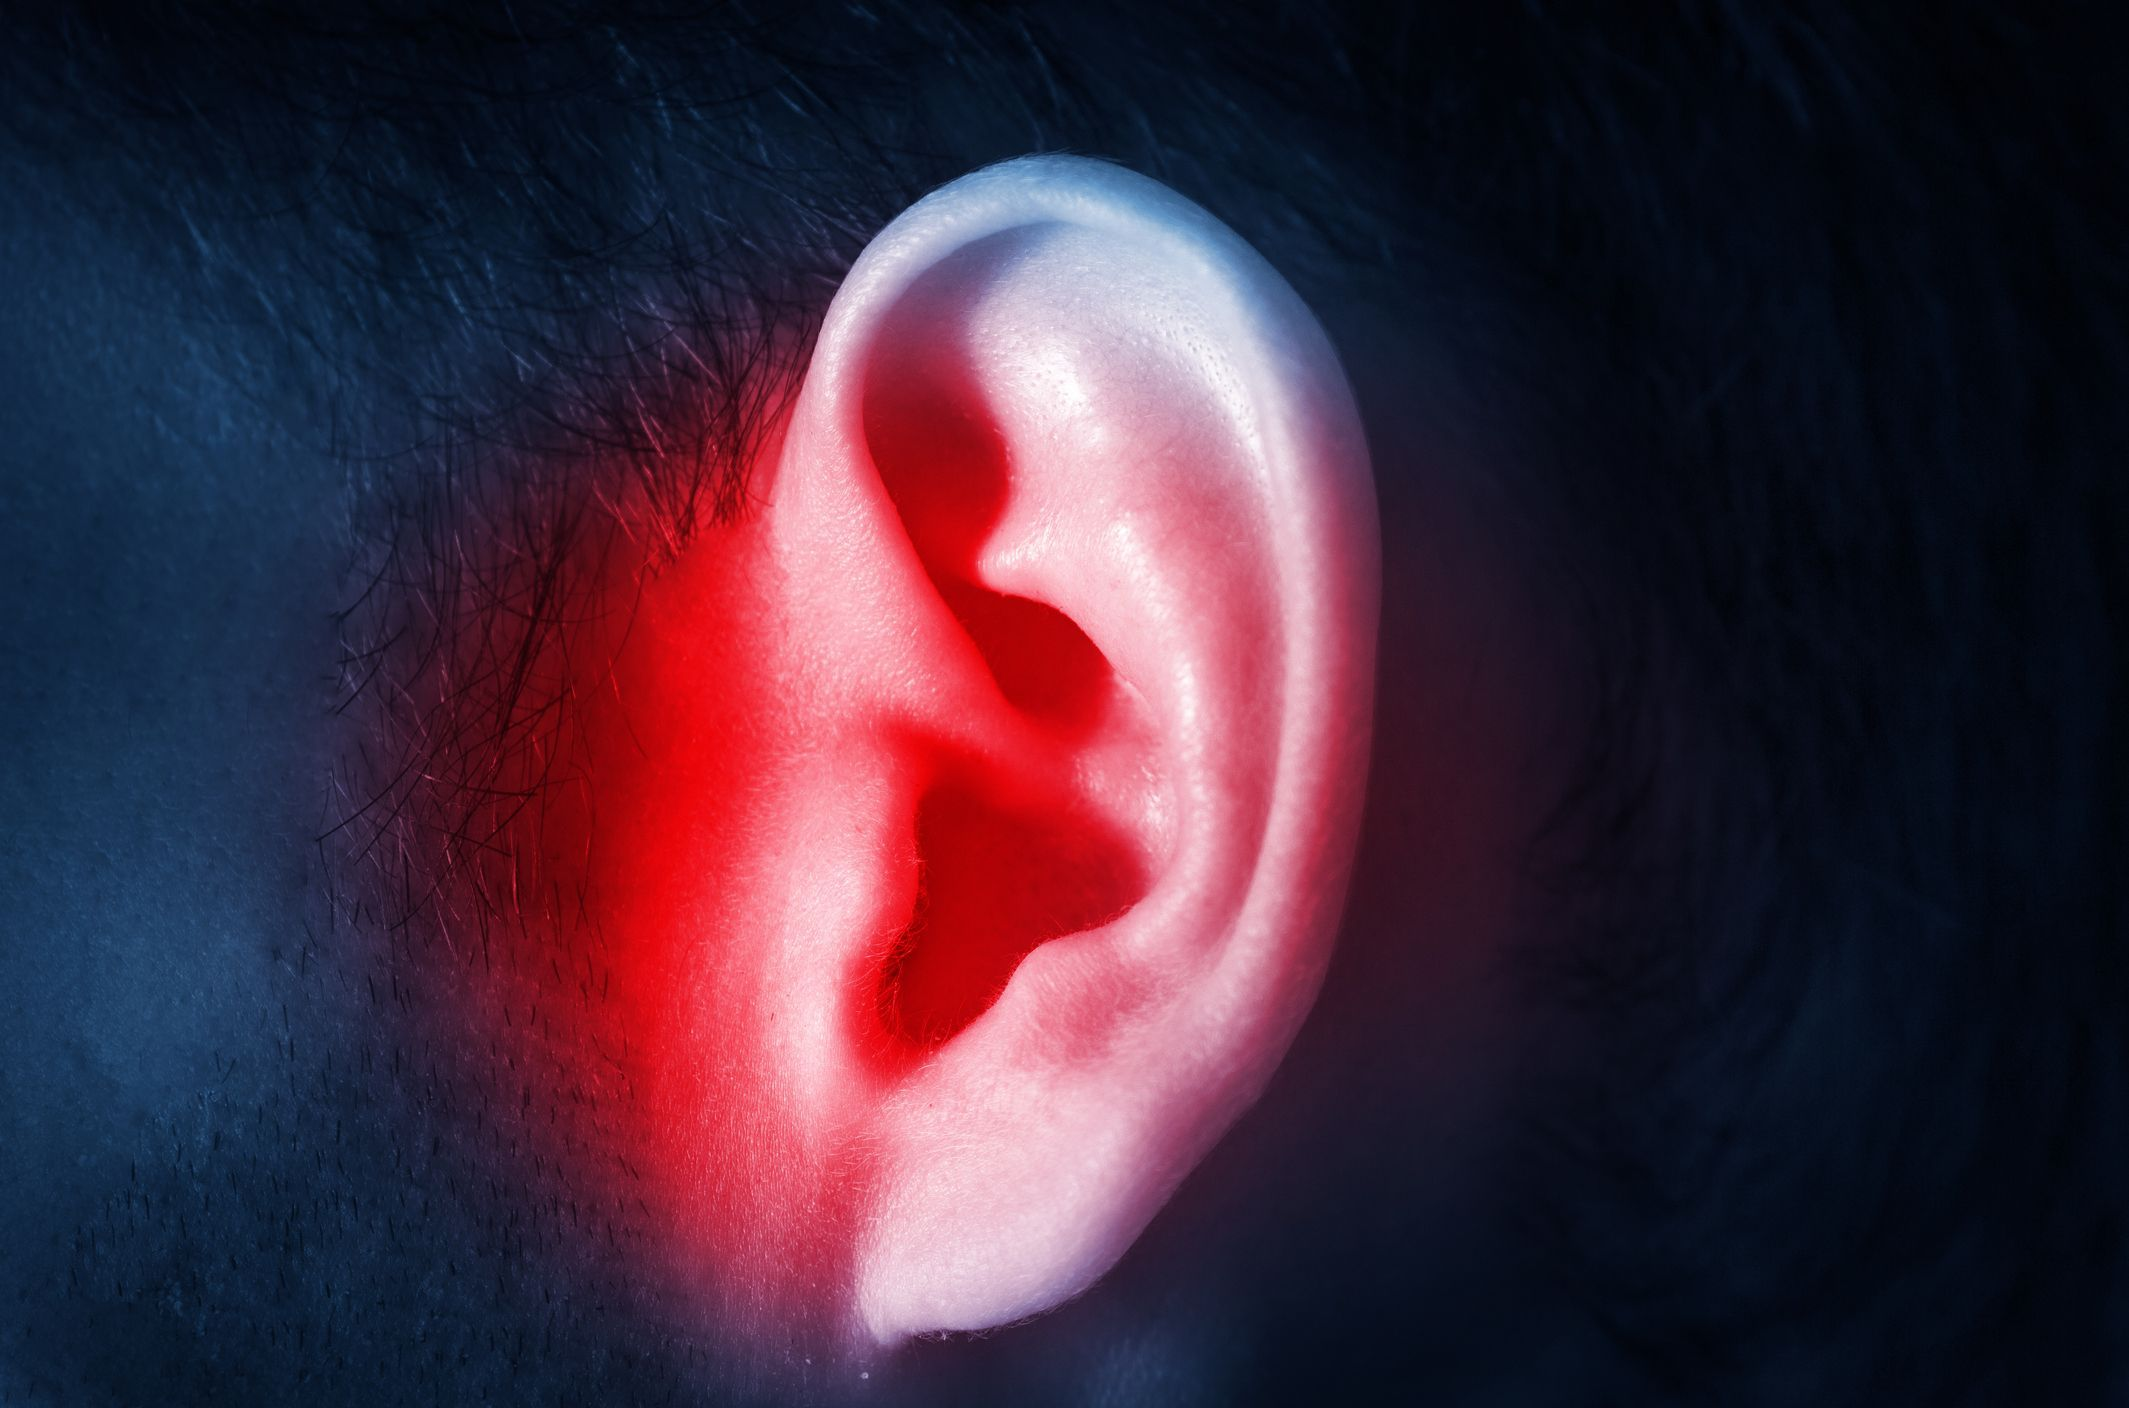 f03806c02d157338301416dbecdf27b9 - How Long To Get Hearing Back After Ear Infection